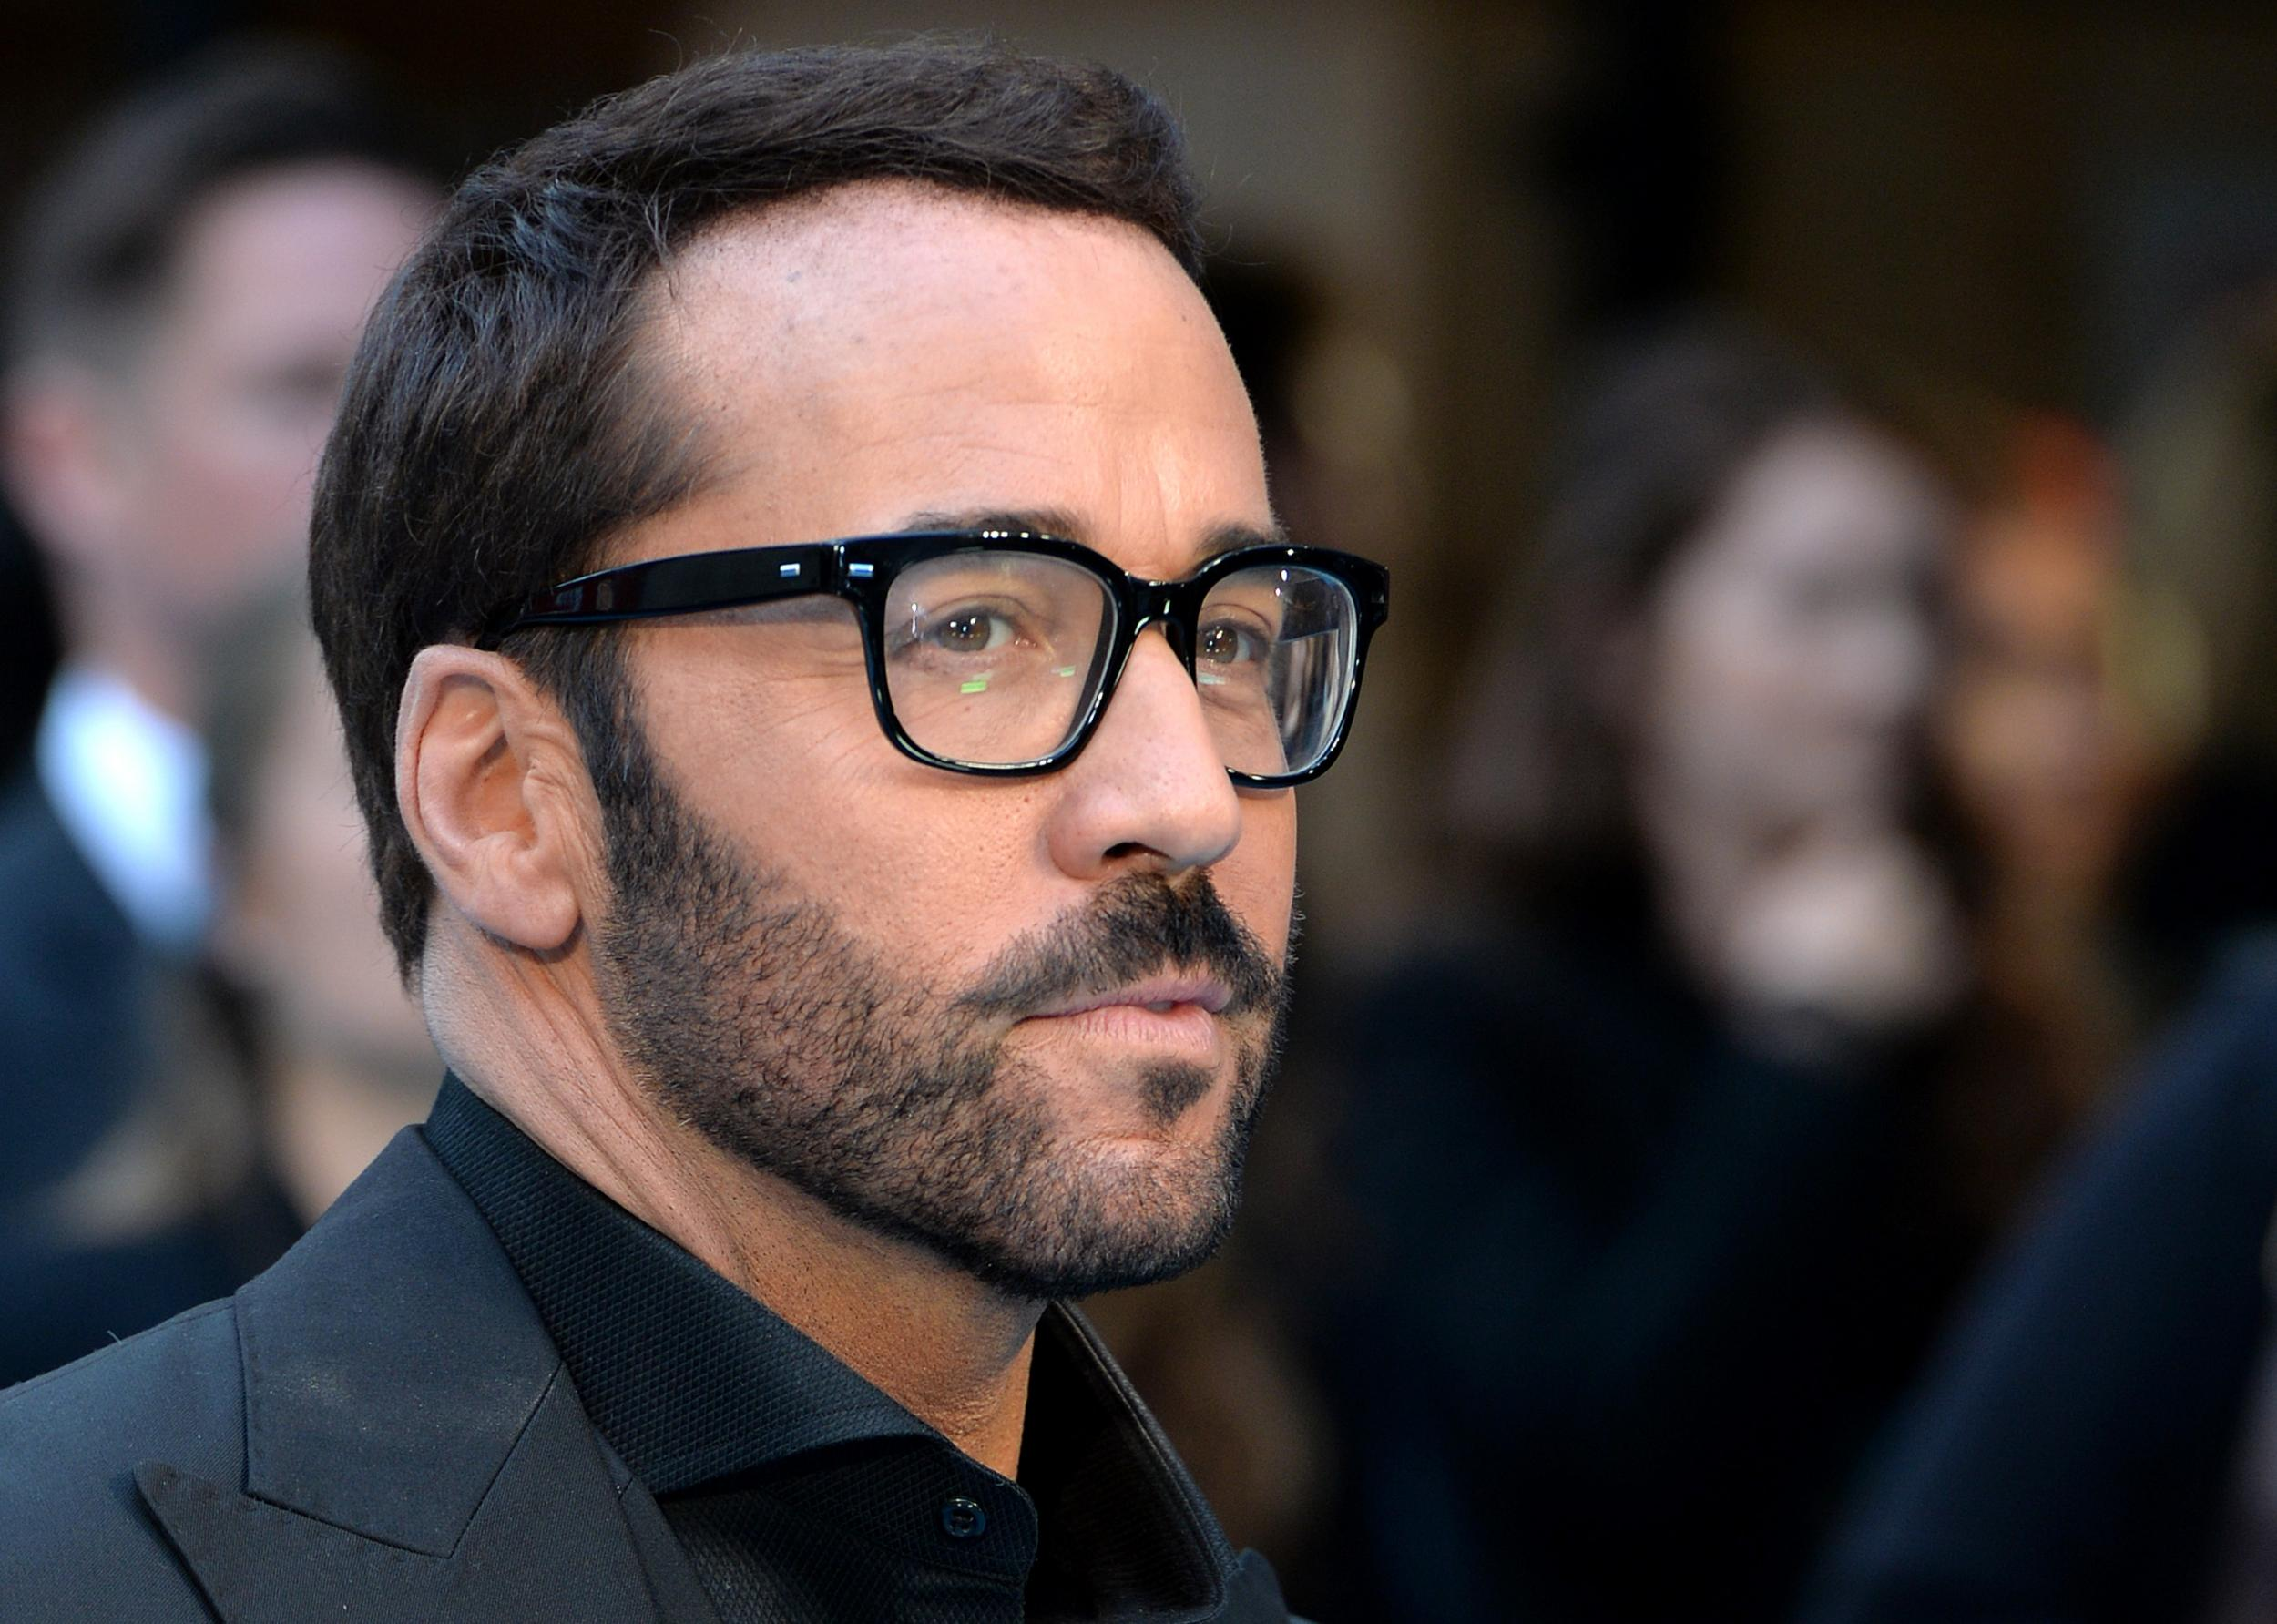 Entourage star Jeremy Piven charging fans $15,000 for 10-minute Zoom call with fans